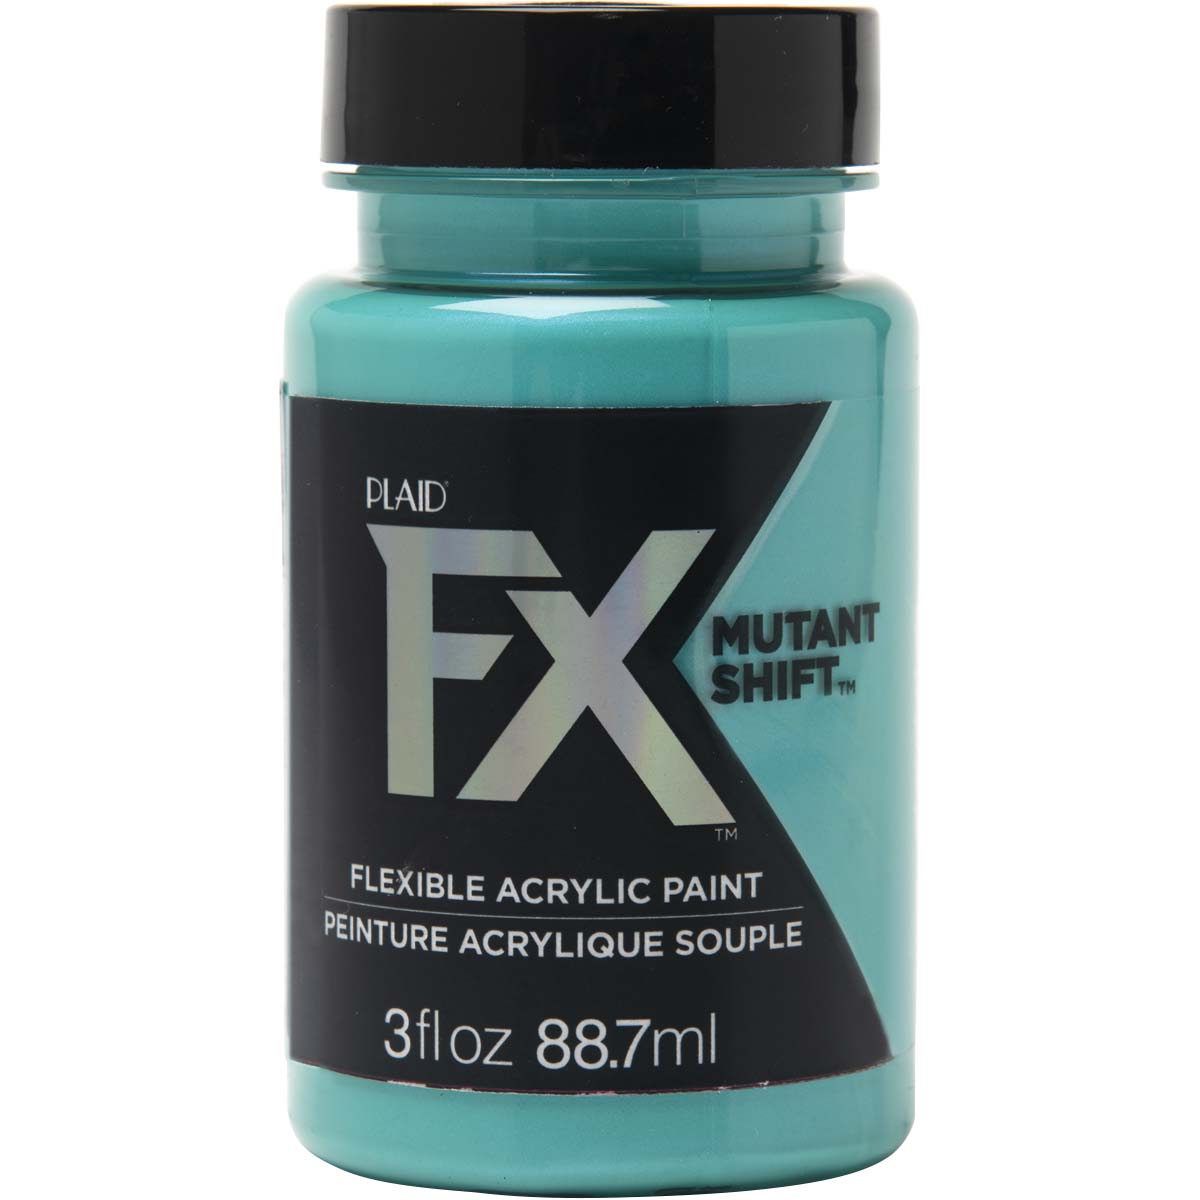 PlaidFX Mutant Shift Flexible Acrylic Paint - Amino Aqua, 3 oz. - 36908